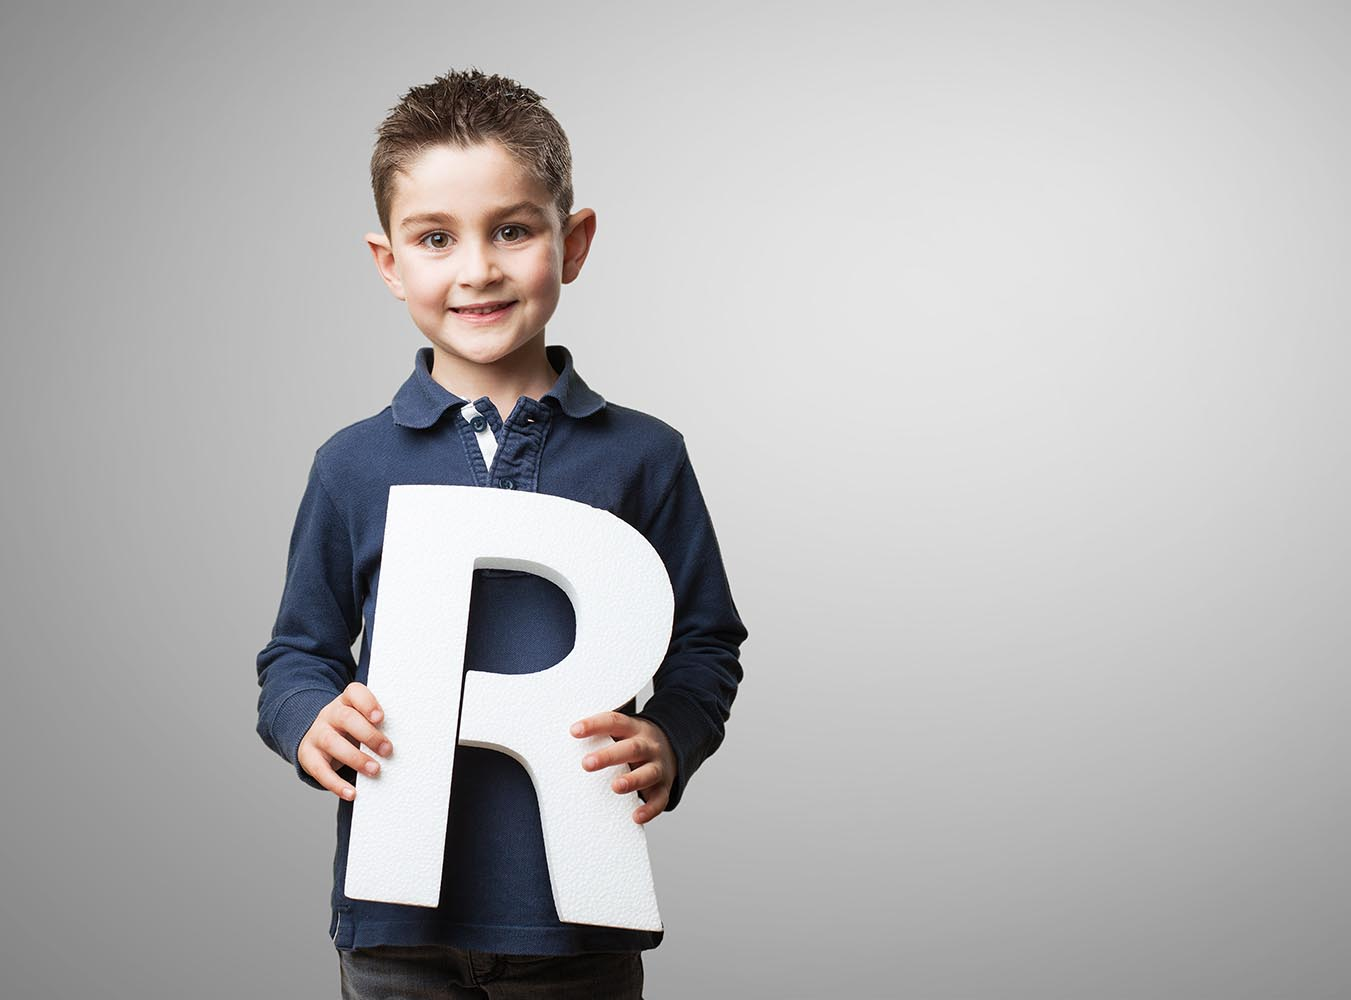 Child Holding Letter R in Hand